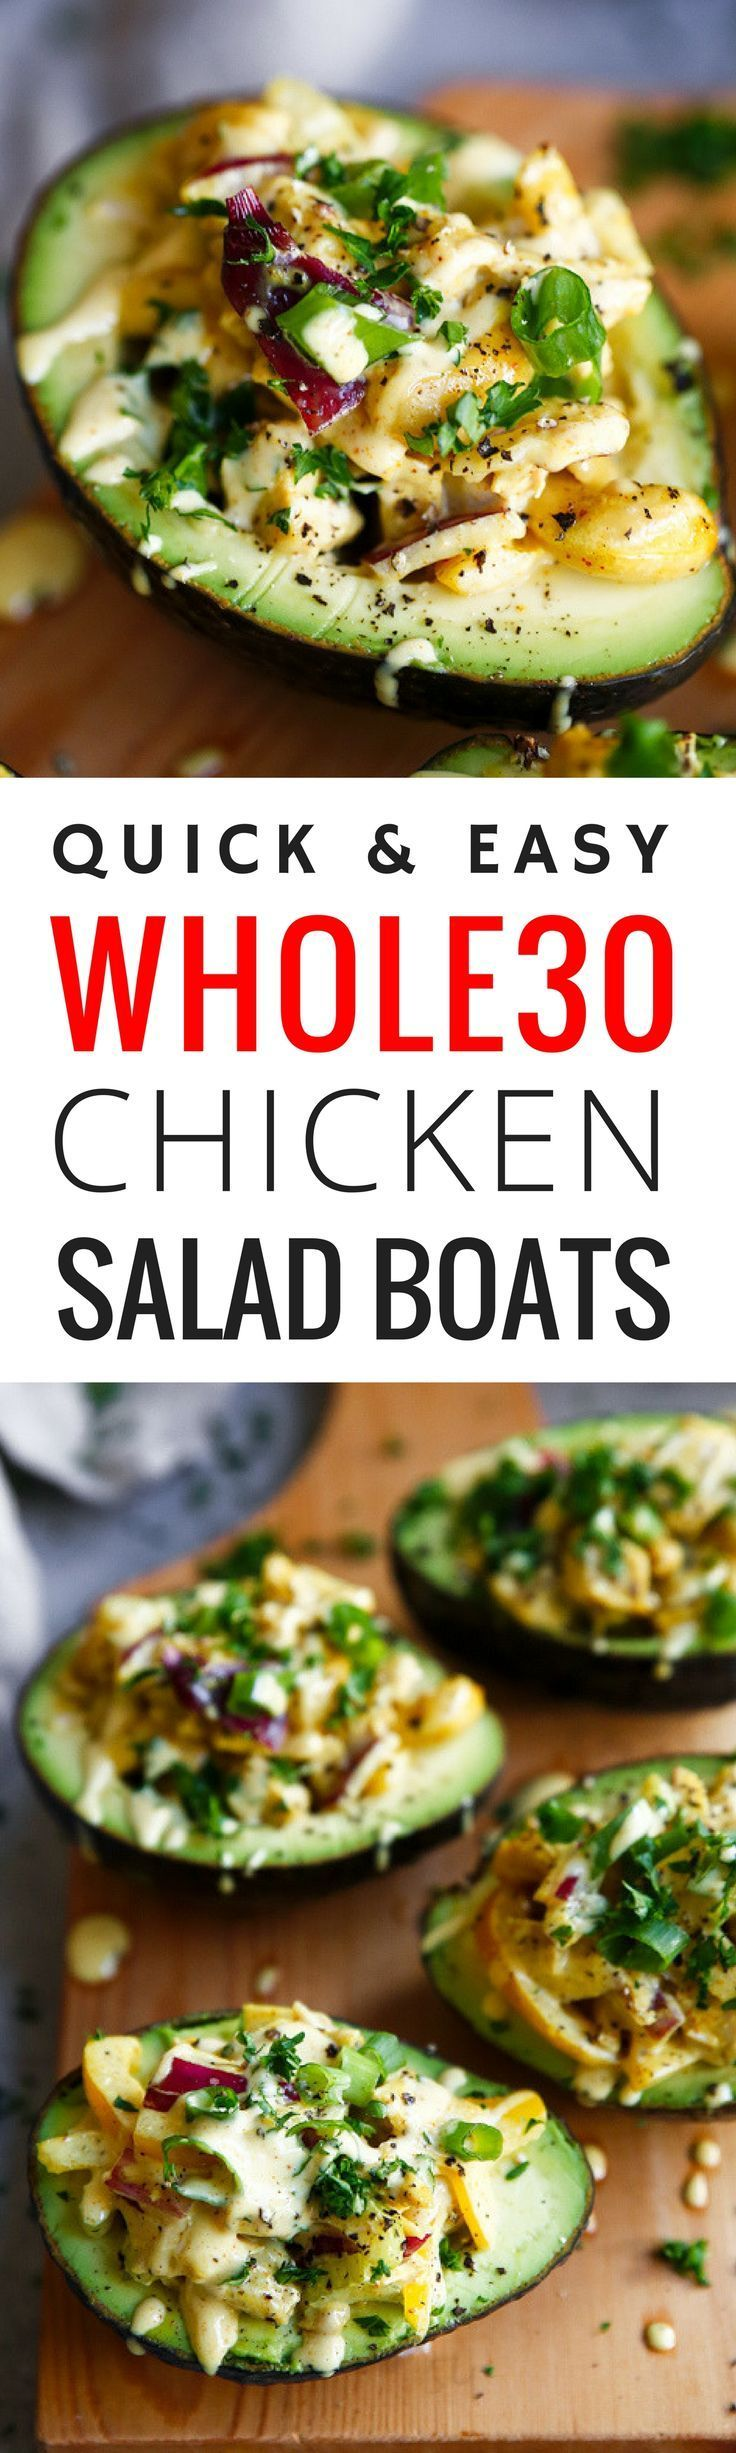 5 minute Whole30 lunch on the go! Easy whole30 chicken salad boats- filled with veggies, topped with fresh herbs and SO healthy and easy to make! Whole30 meal ideas. whole30 meal plan. Easy whole30 dinner recipes. Whole30 snacks. Whole30 recipes. Whole30